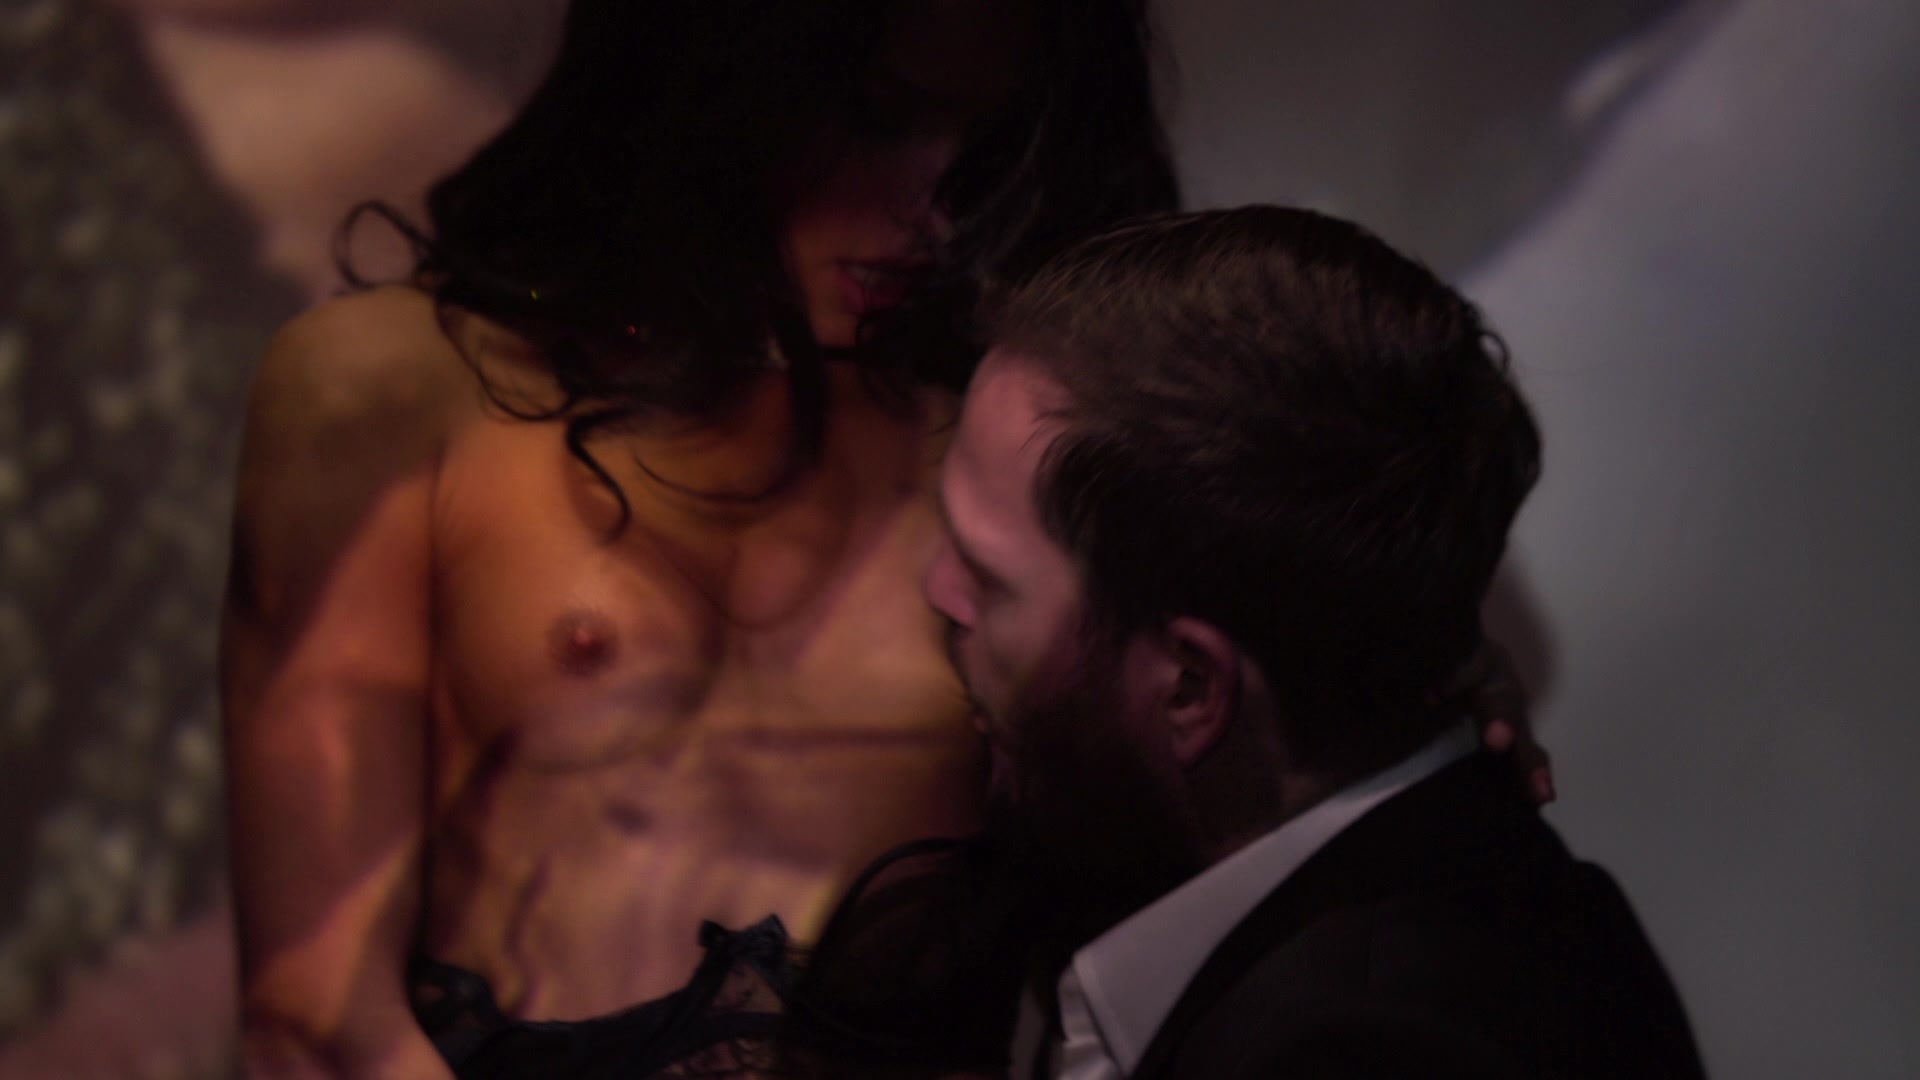 Scene with Megan Rain - image 6 out of 20